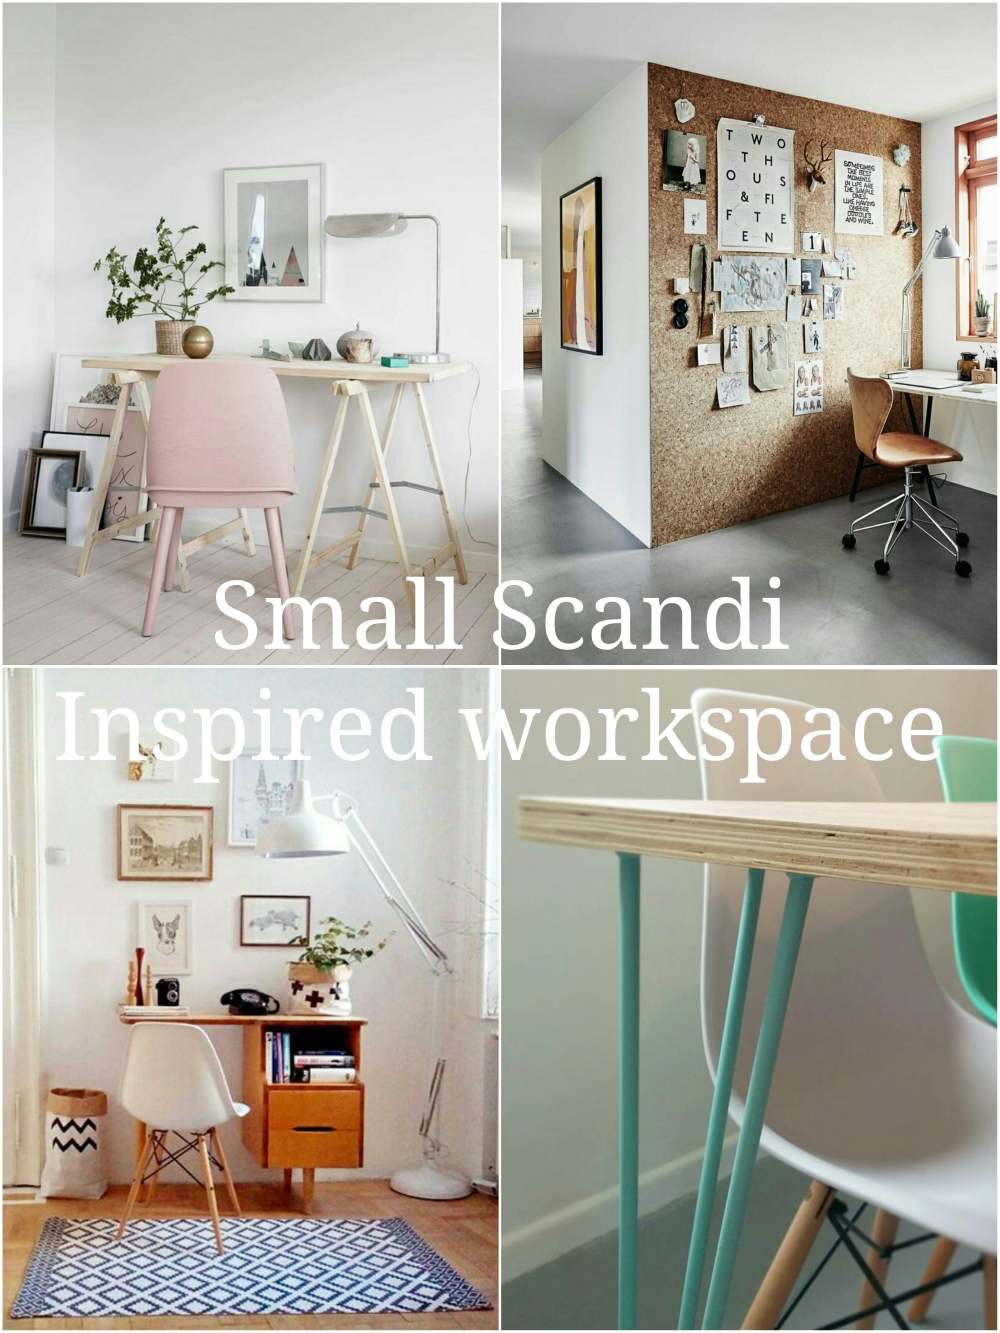 A small Scandi inspired workspace